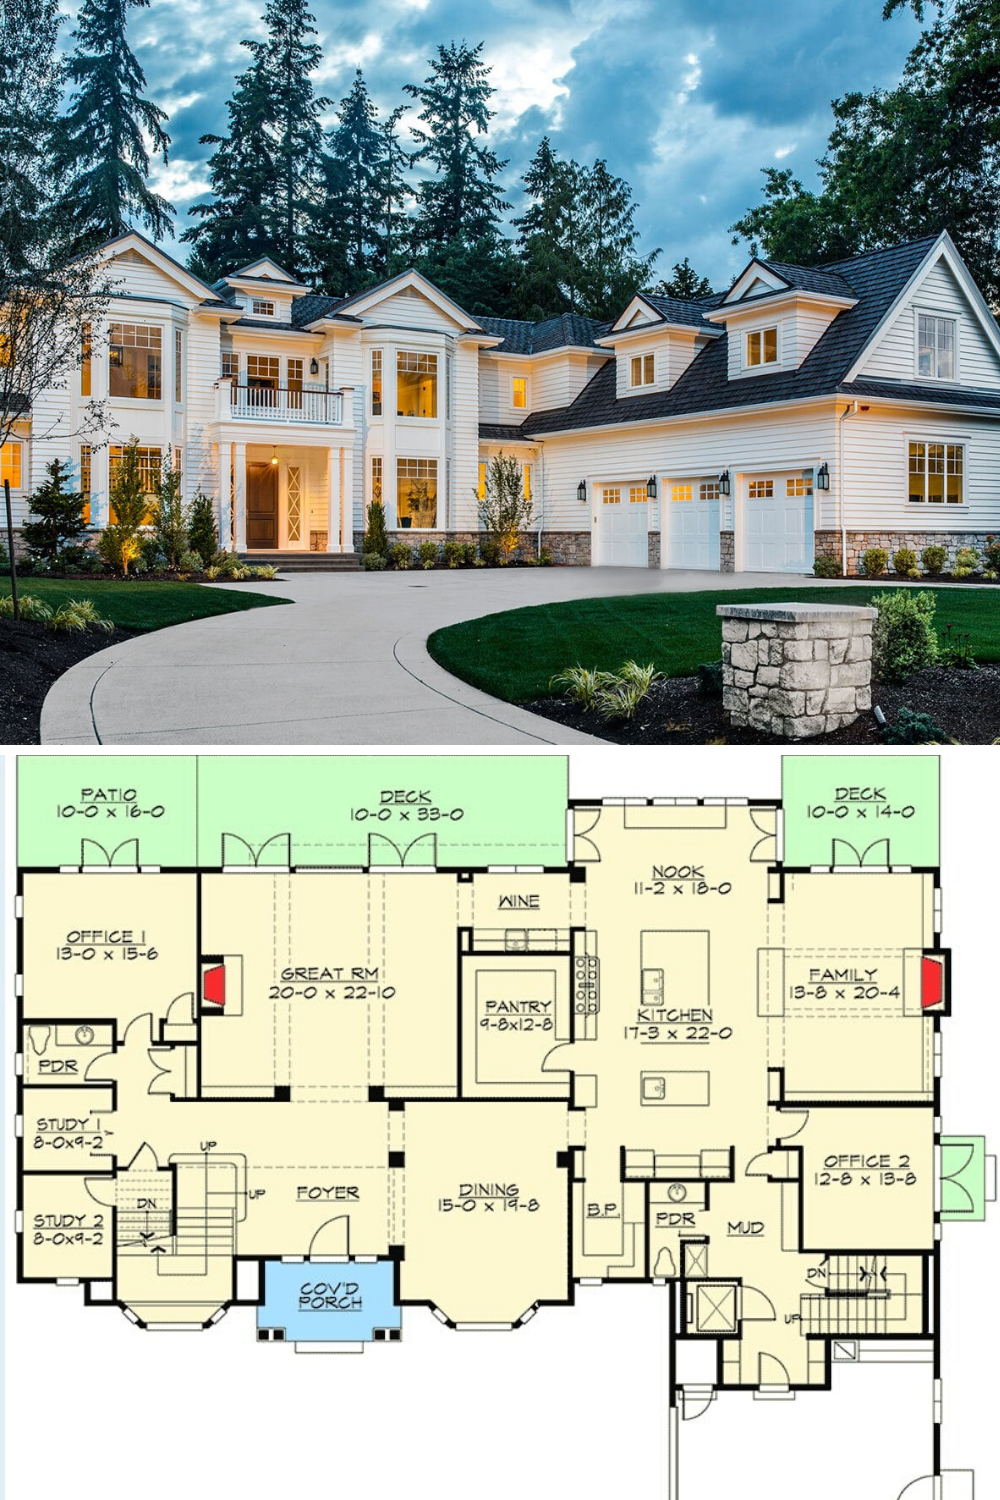 Two Story 5 Bedroom Traditional Colonial Home Floor Plan